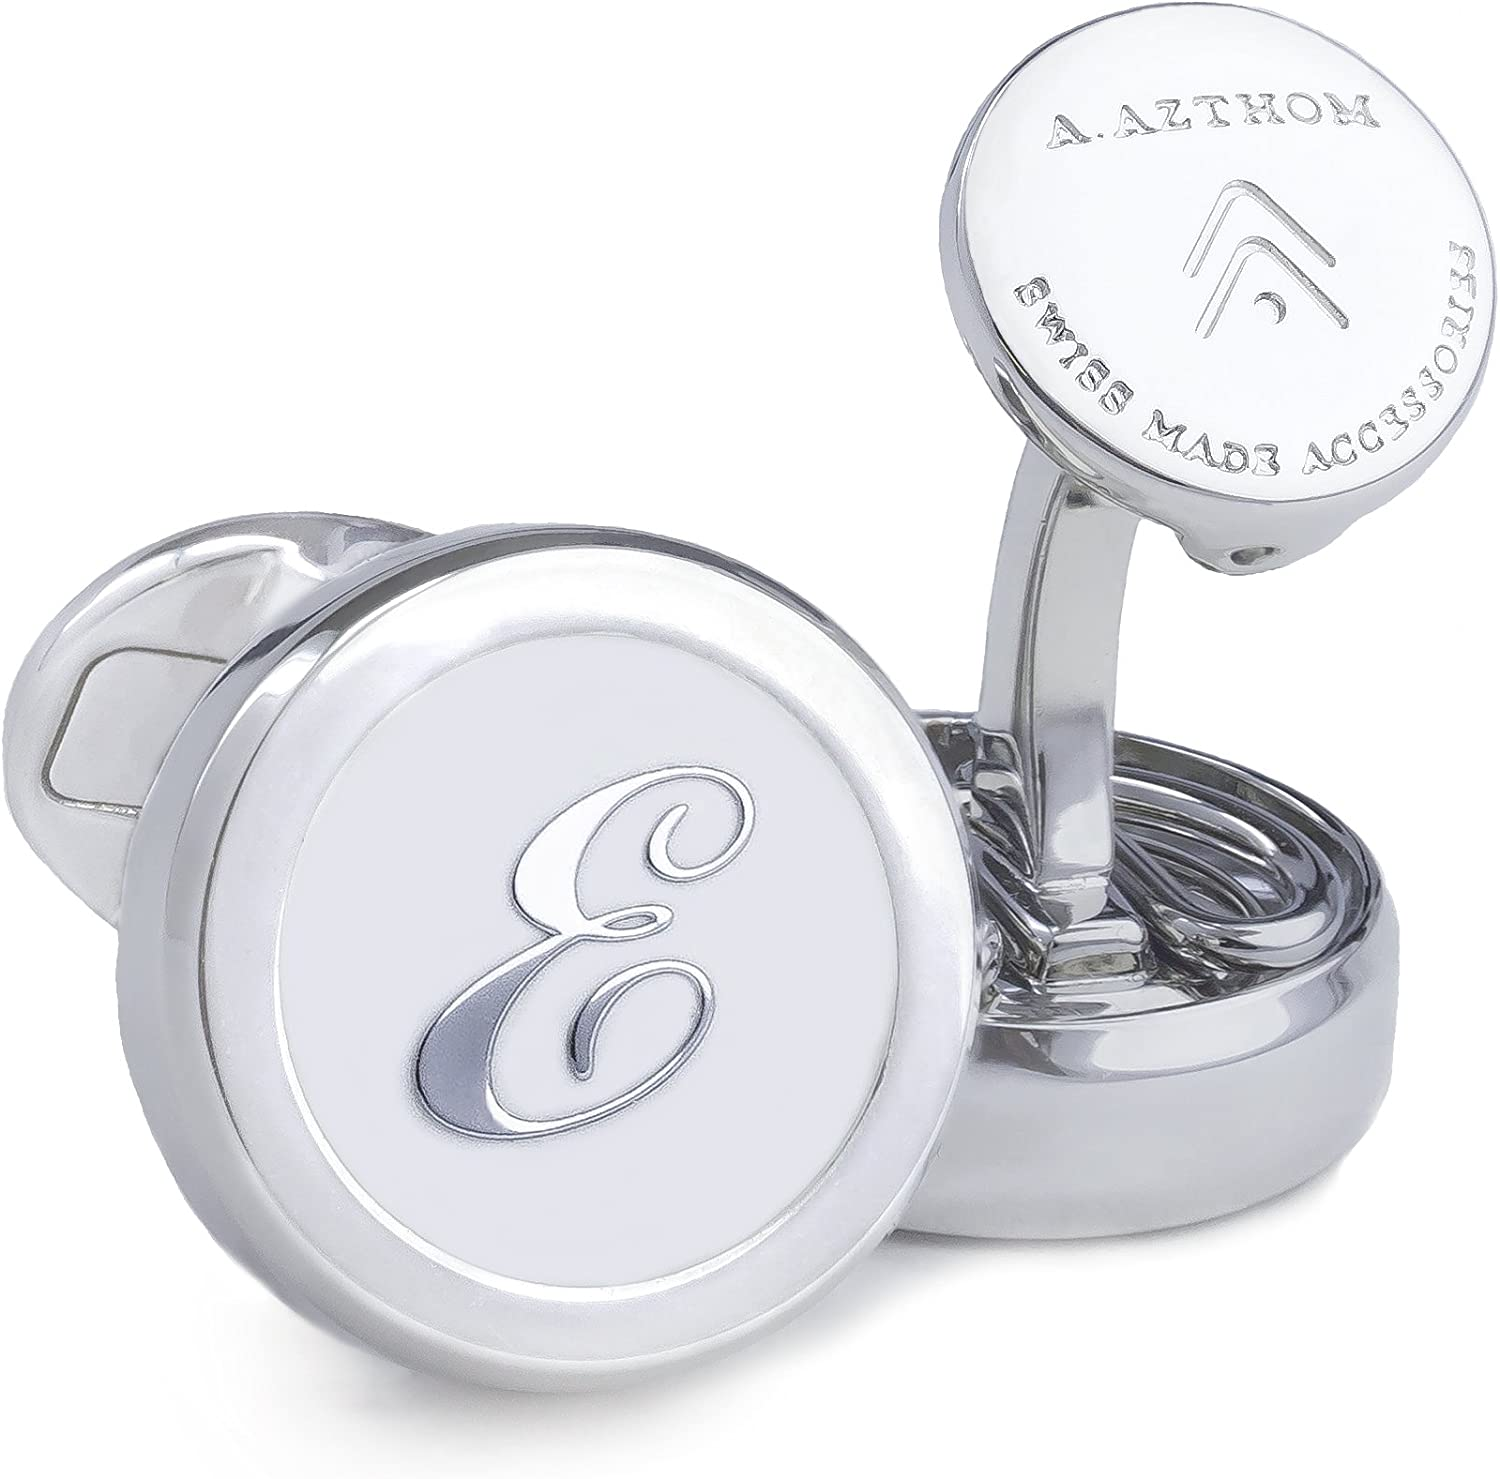 Azthom Cufflinks with Letter  E  White and Silver Button Covers